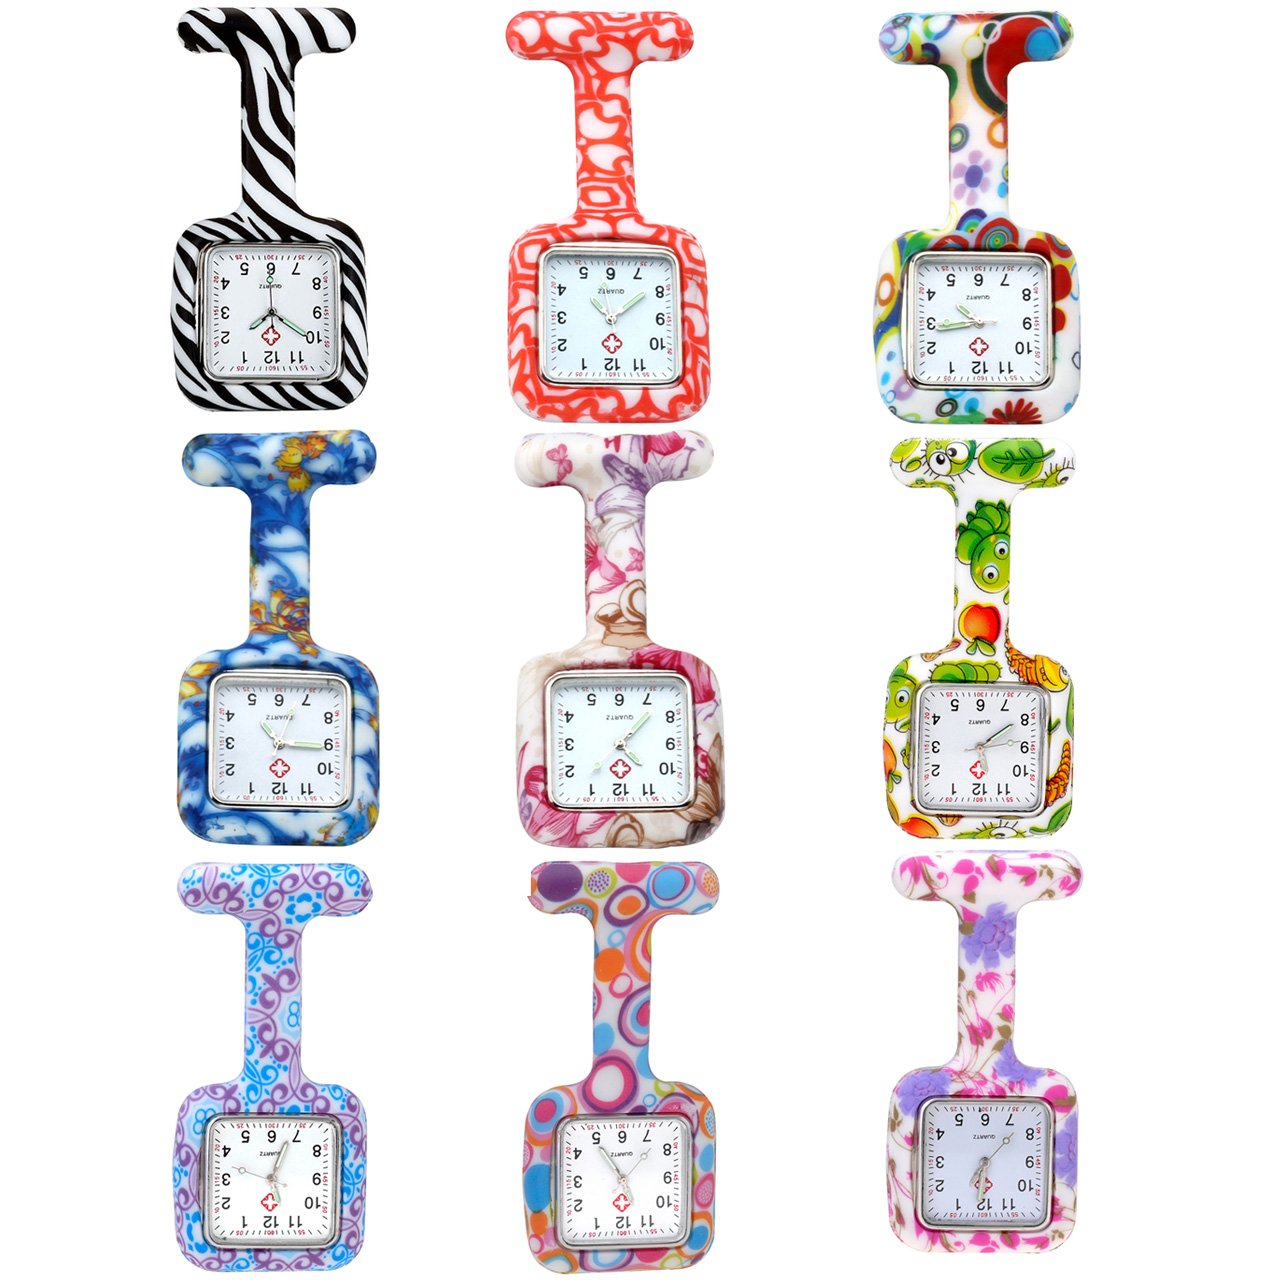 Top Plaza 9 PCs Silicone Fob Pocket Nurse Analog Quartz Watches Set - Floral Square Jelly Clip on Brooch by Top Plaza (Image #2)